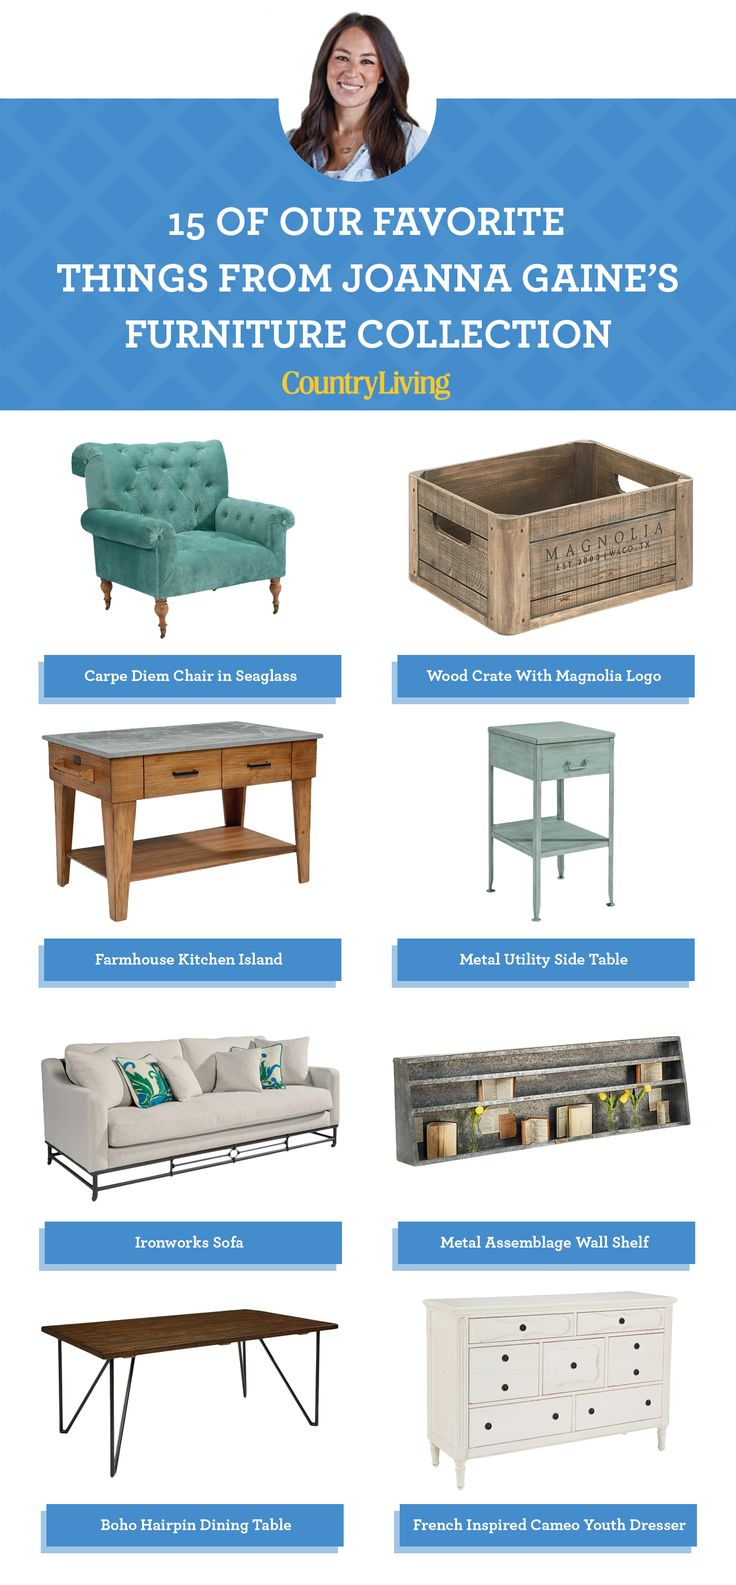 2113 best images about Fixer Upper/Joanna Gaines/Magnolia